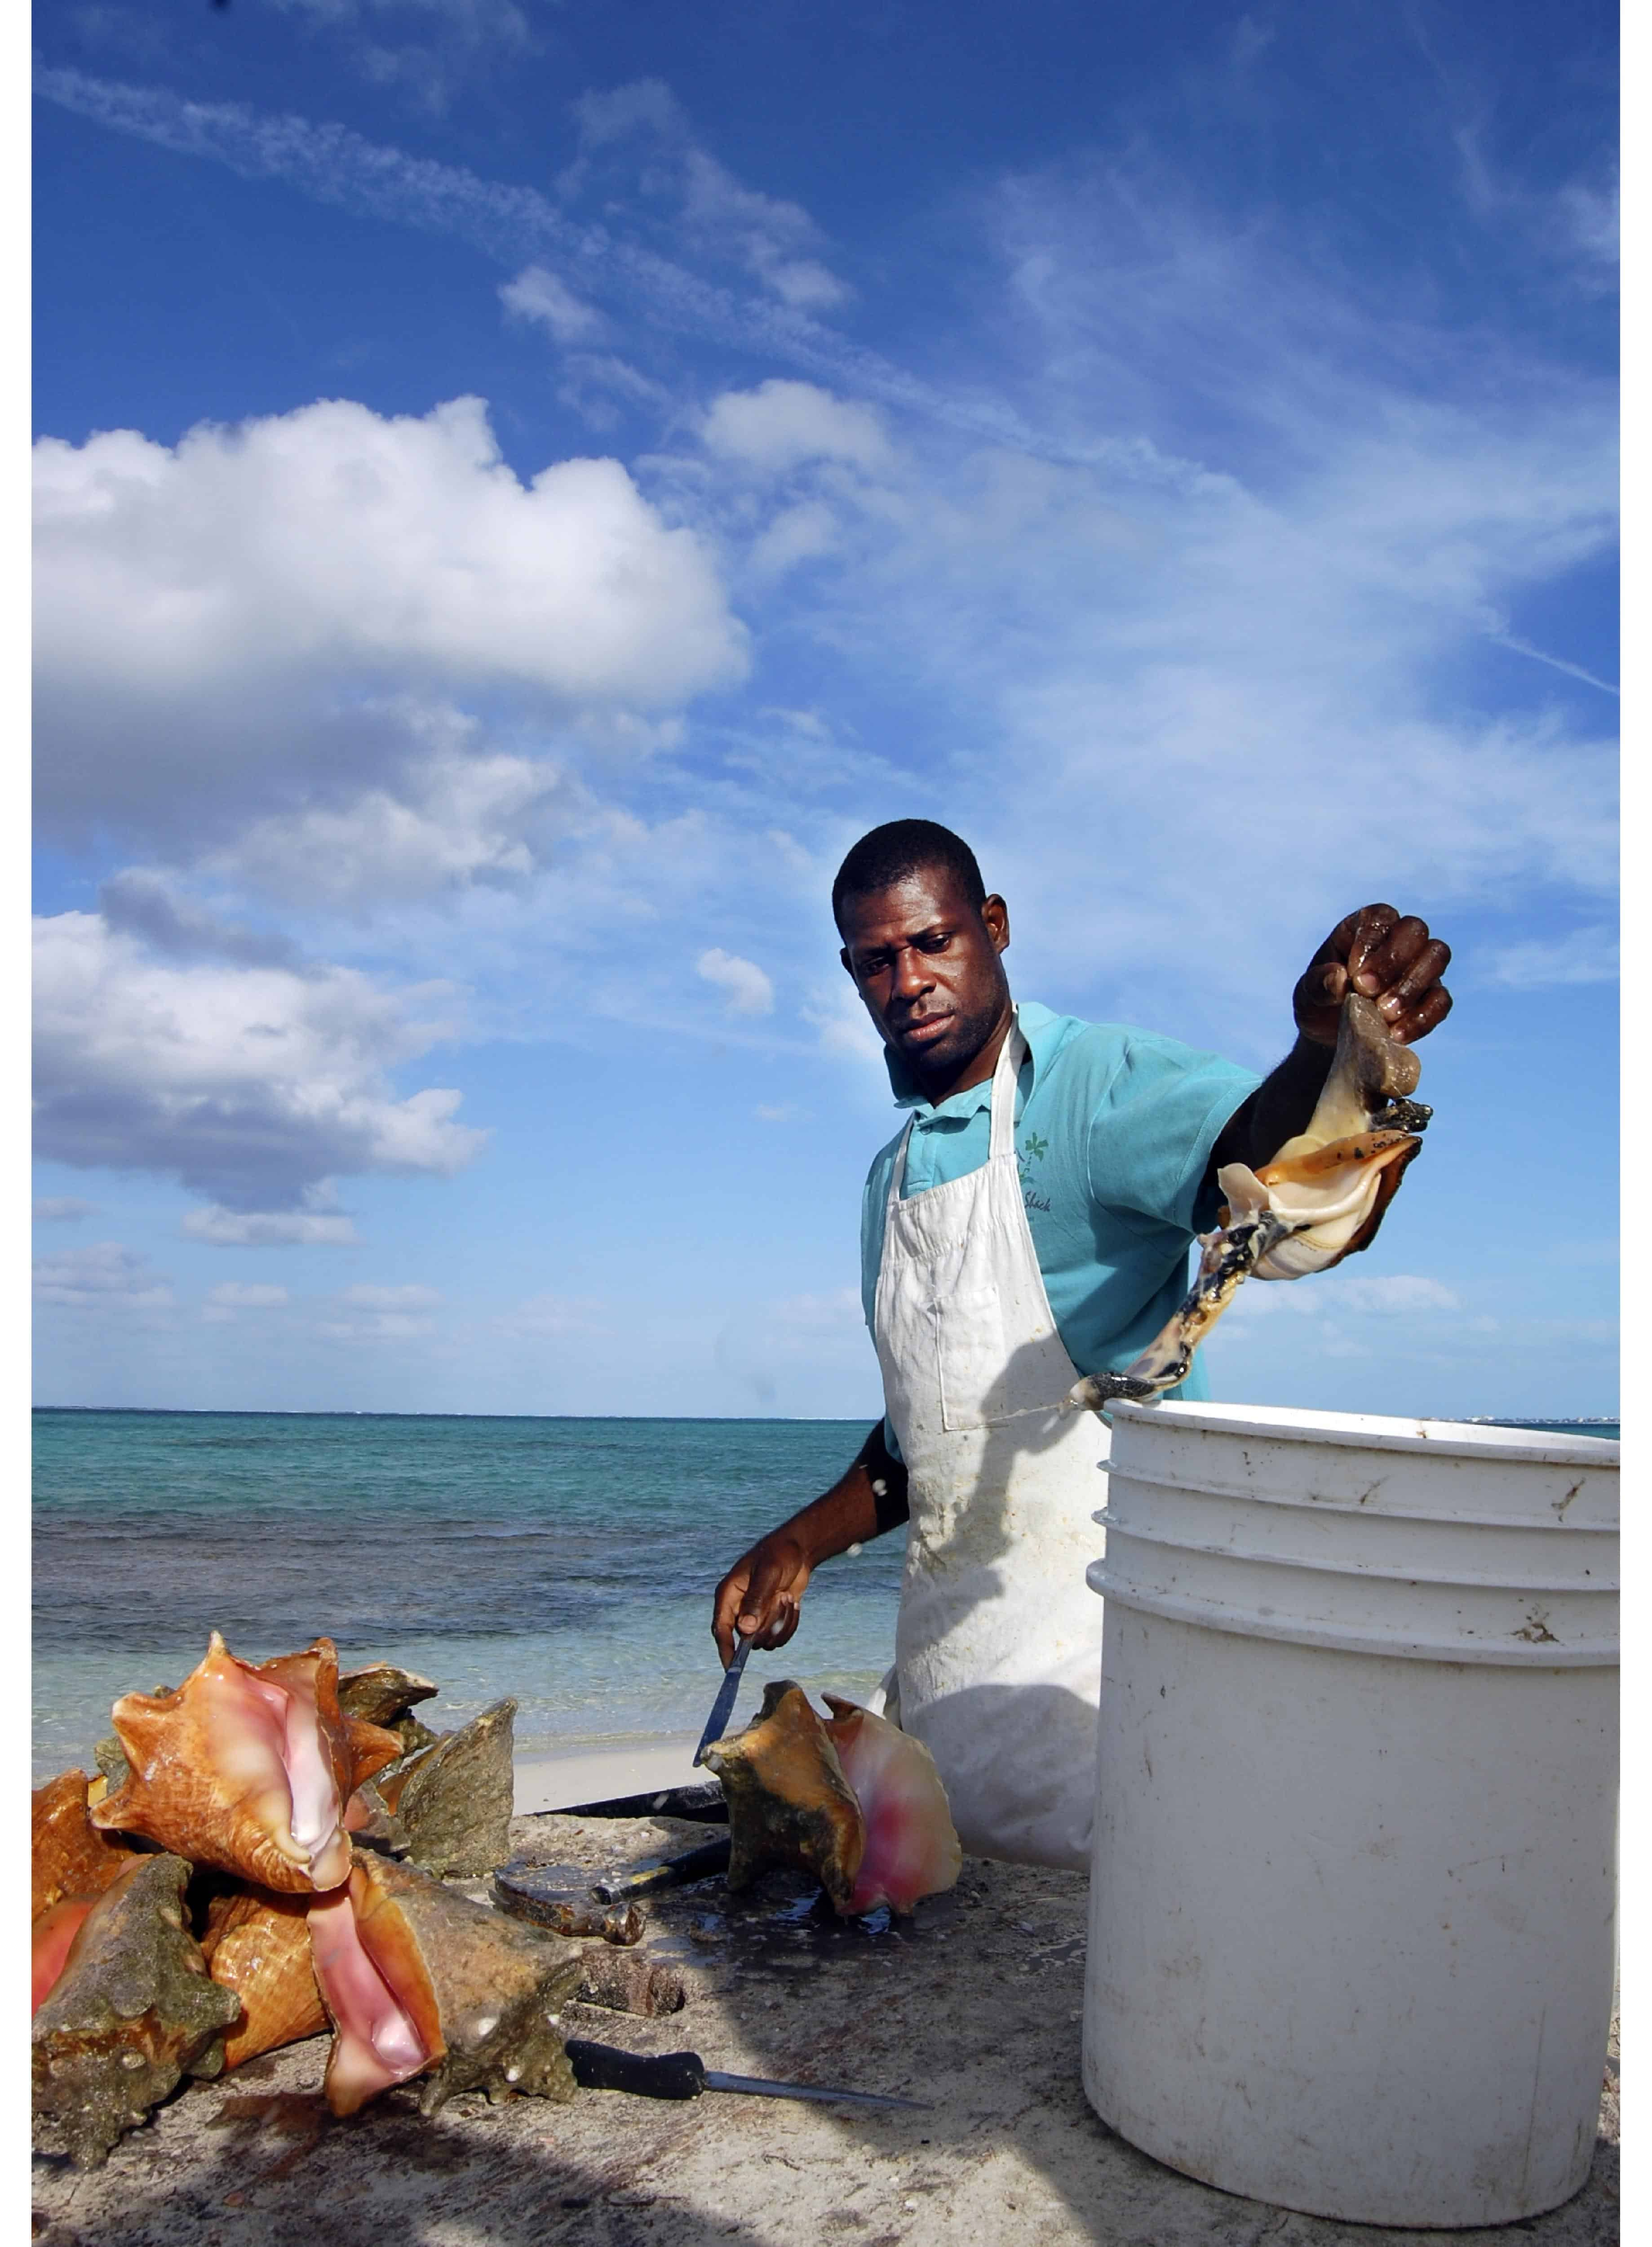 conch fisherman cleaning conch